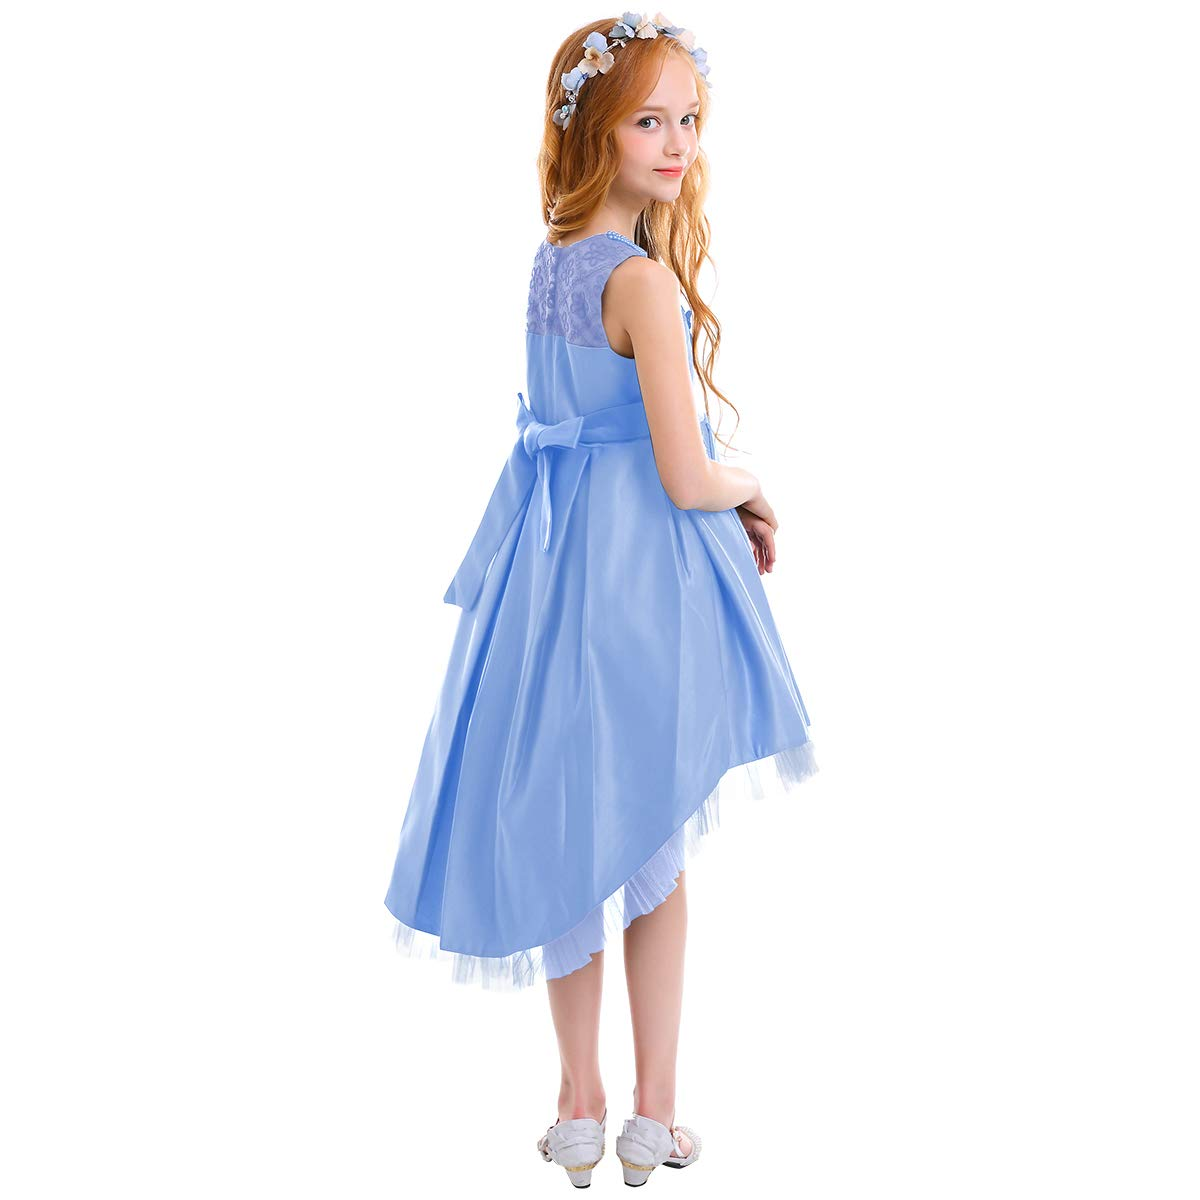 630bd4bb8 Amazon.com: Little Girls Floral High Low Dress Formal Wedding Ball Gown  Pageant Dance Party Flower Girl Dresses: Clothing